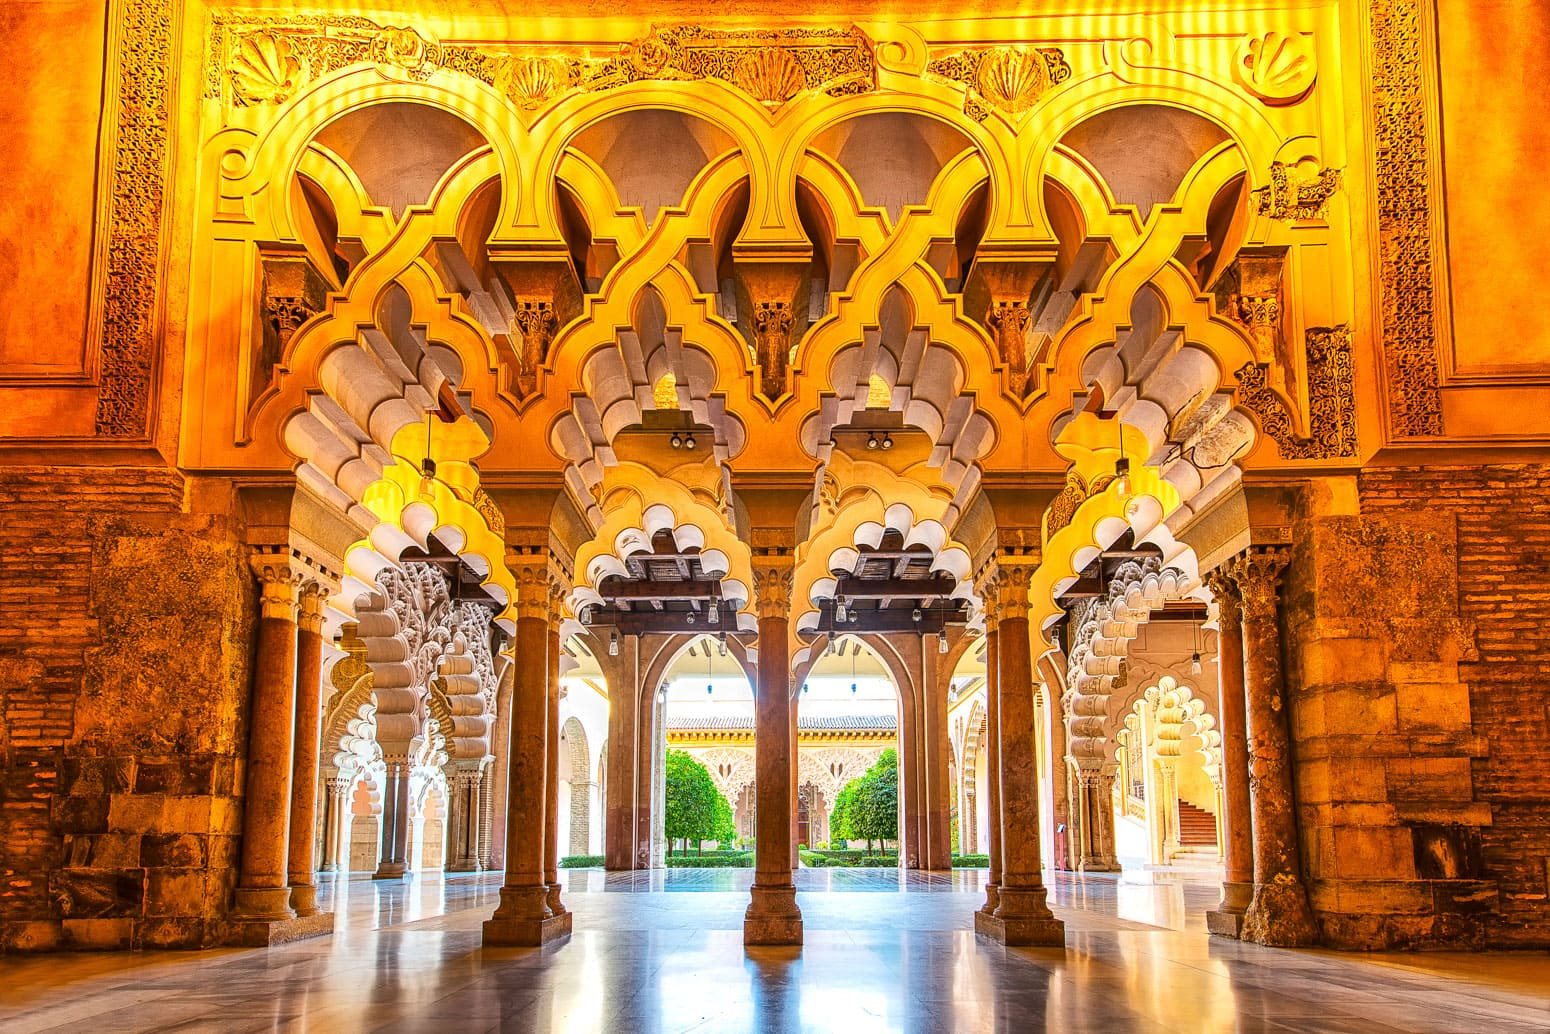 Aljaferia Palace | Zaragoza, Spain